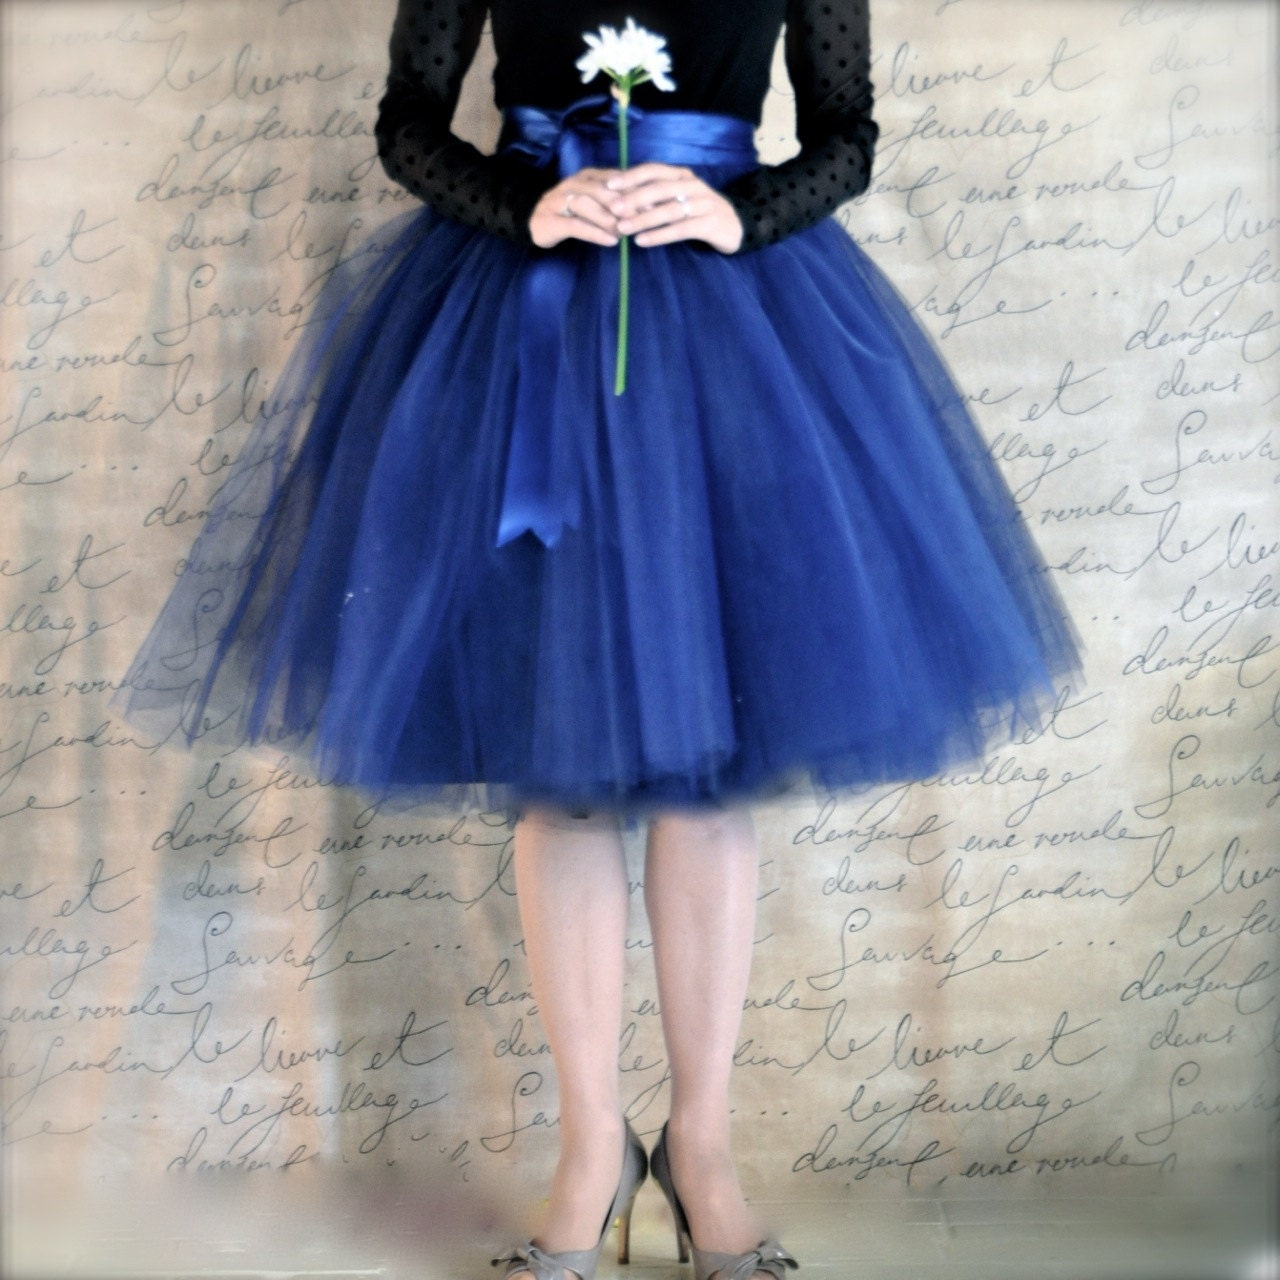 Navy blue tulle skirt tutu for women lined in black satin with